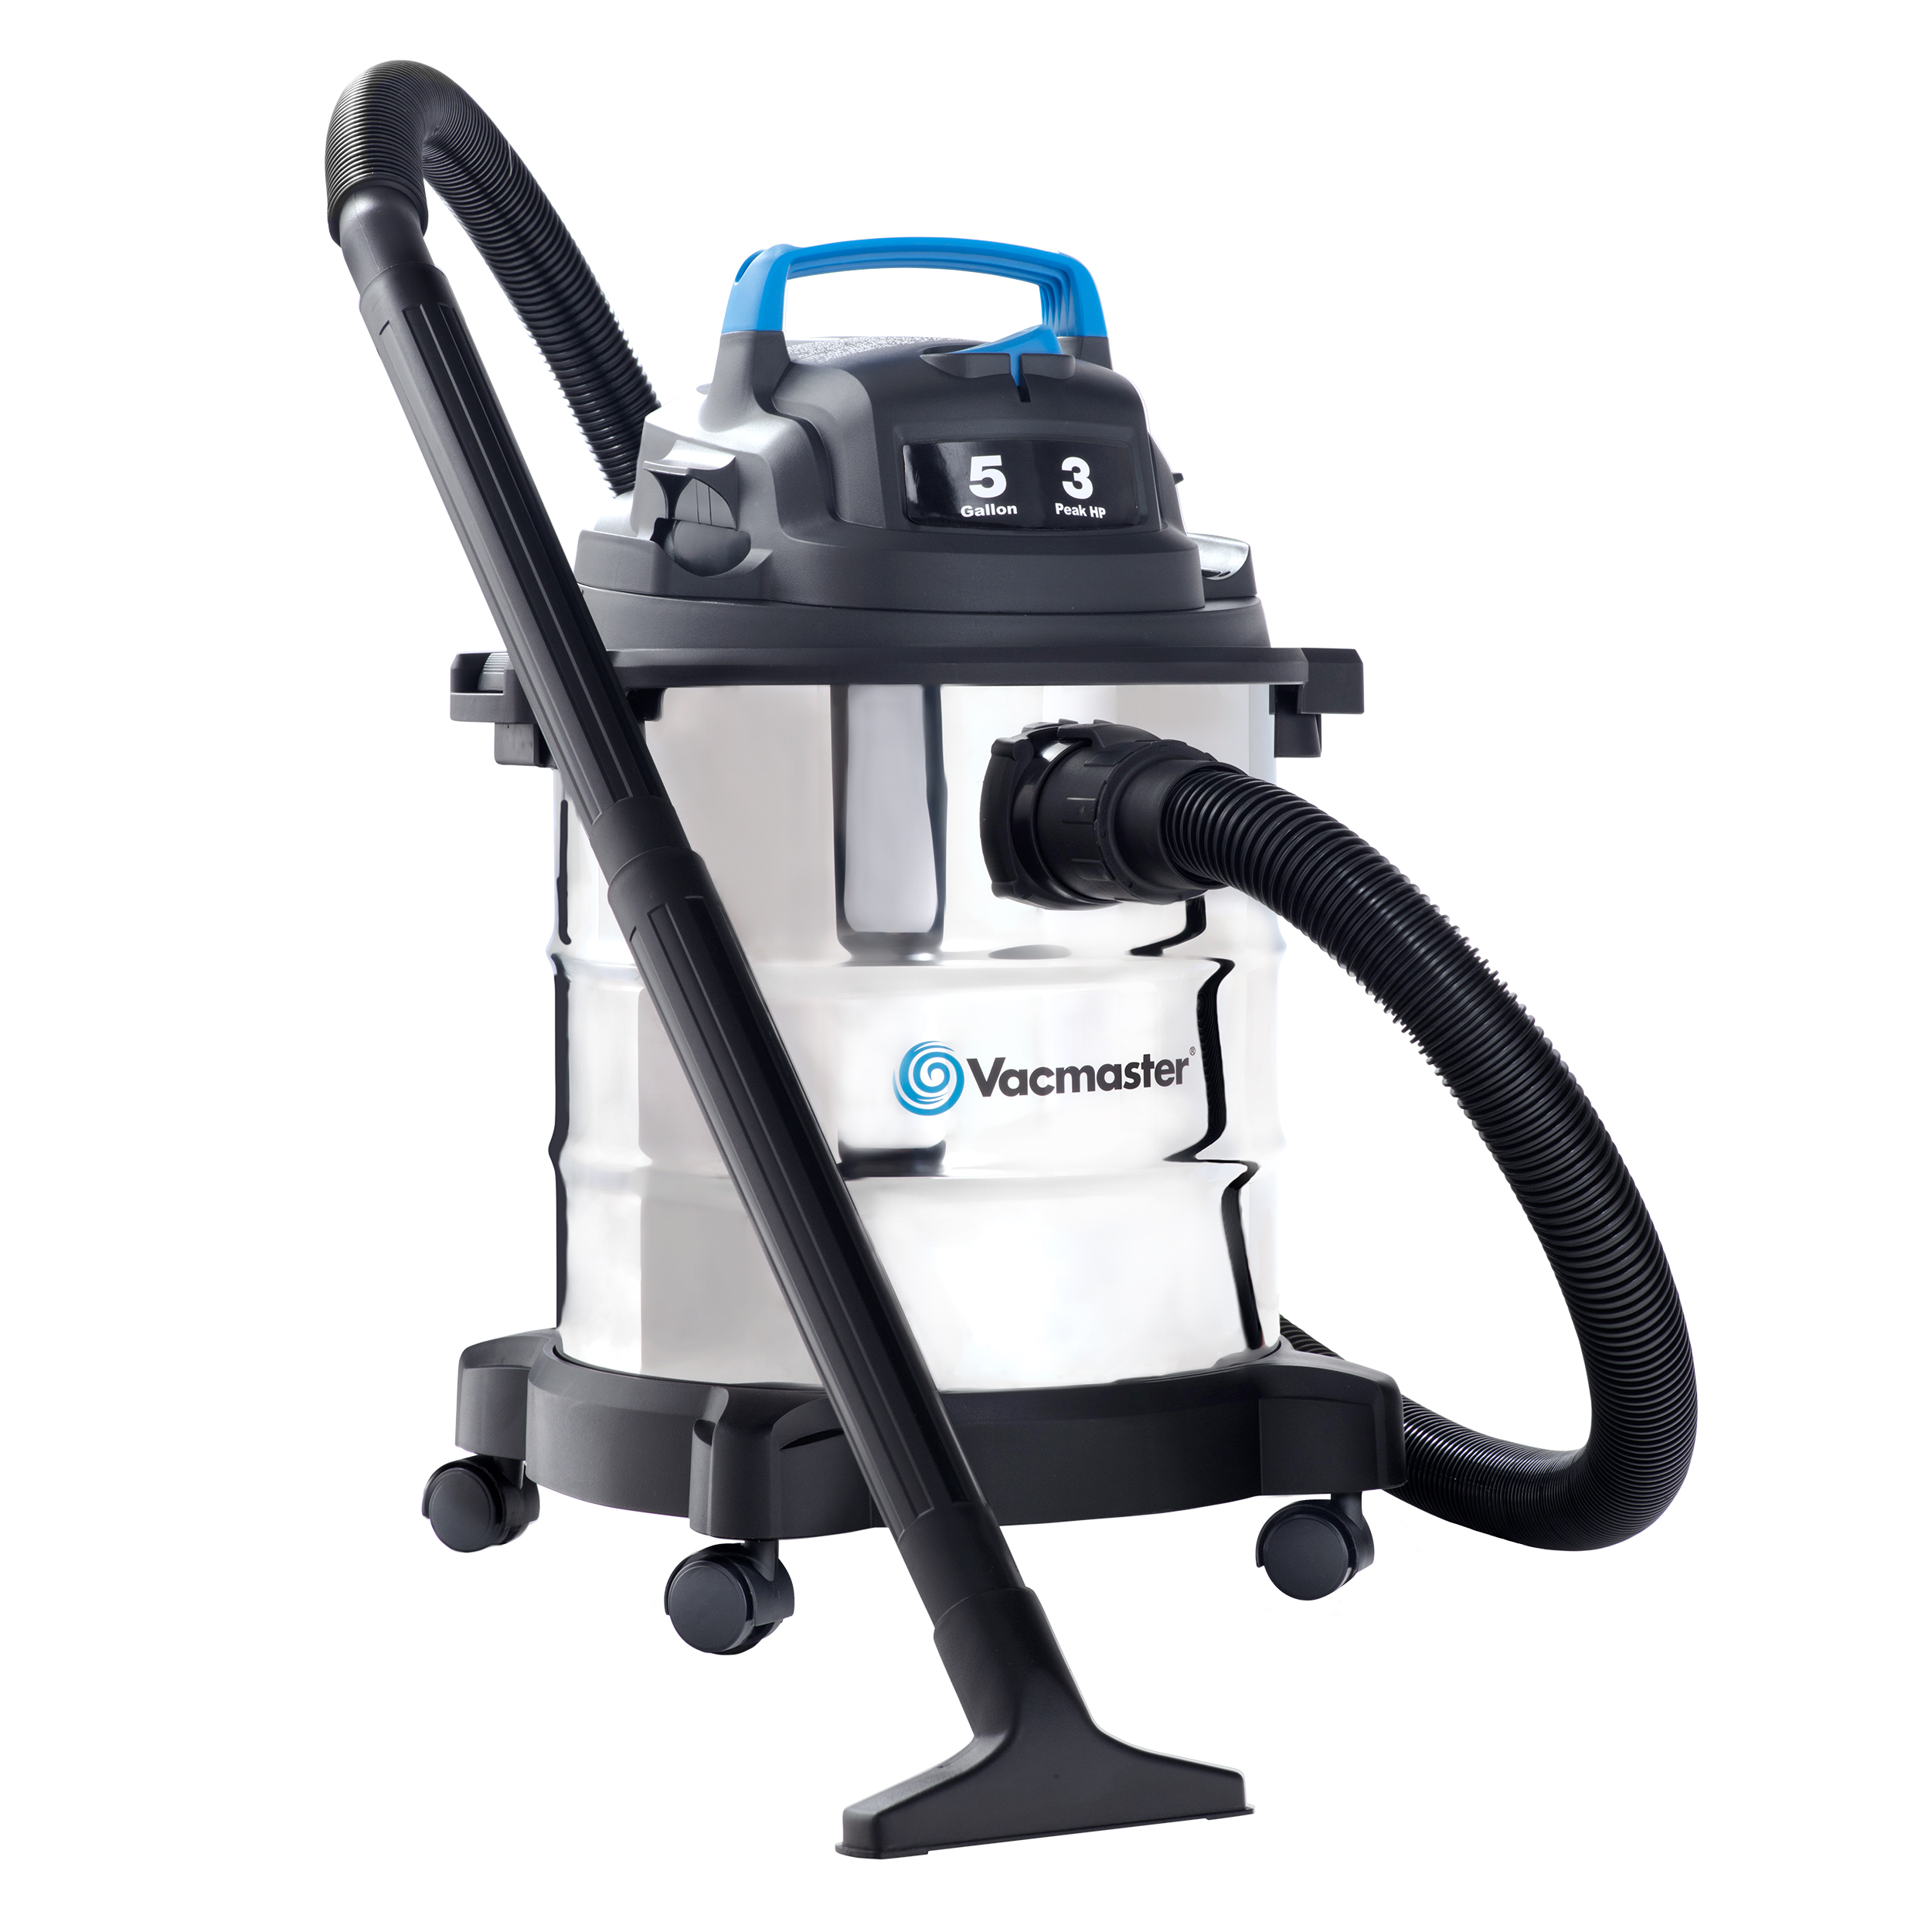 Vacmaster 5 Gallon, 3 HP Stainless Steel Tank Wet/Dry Vacuum